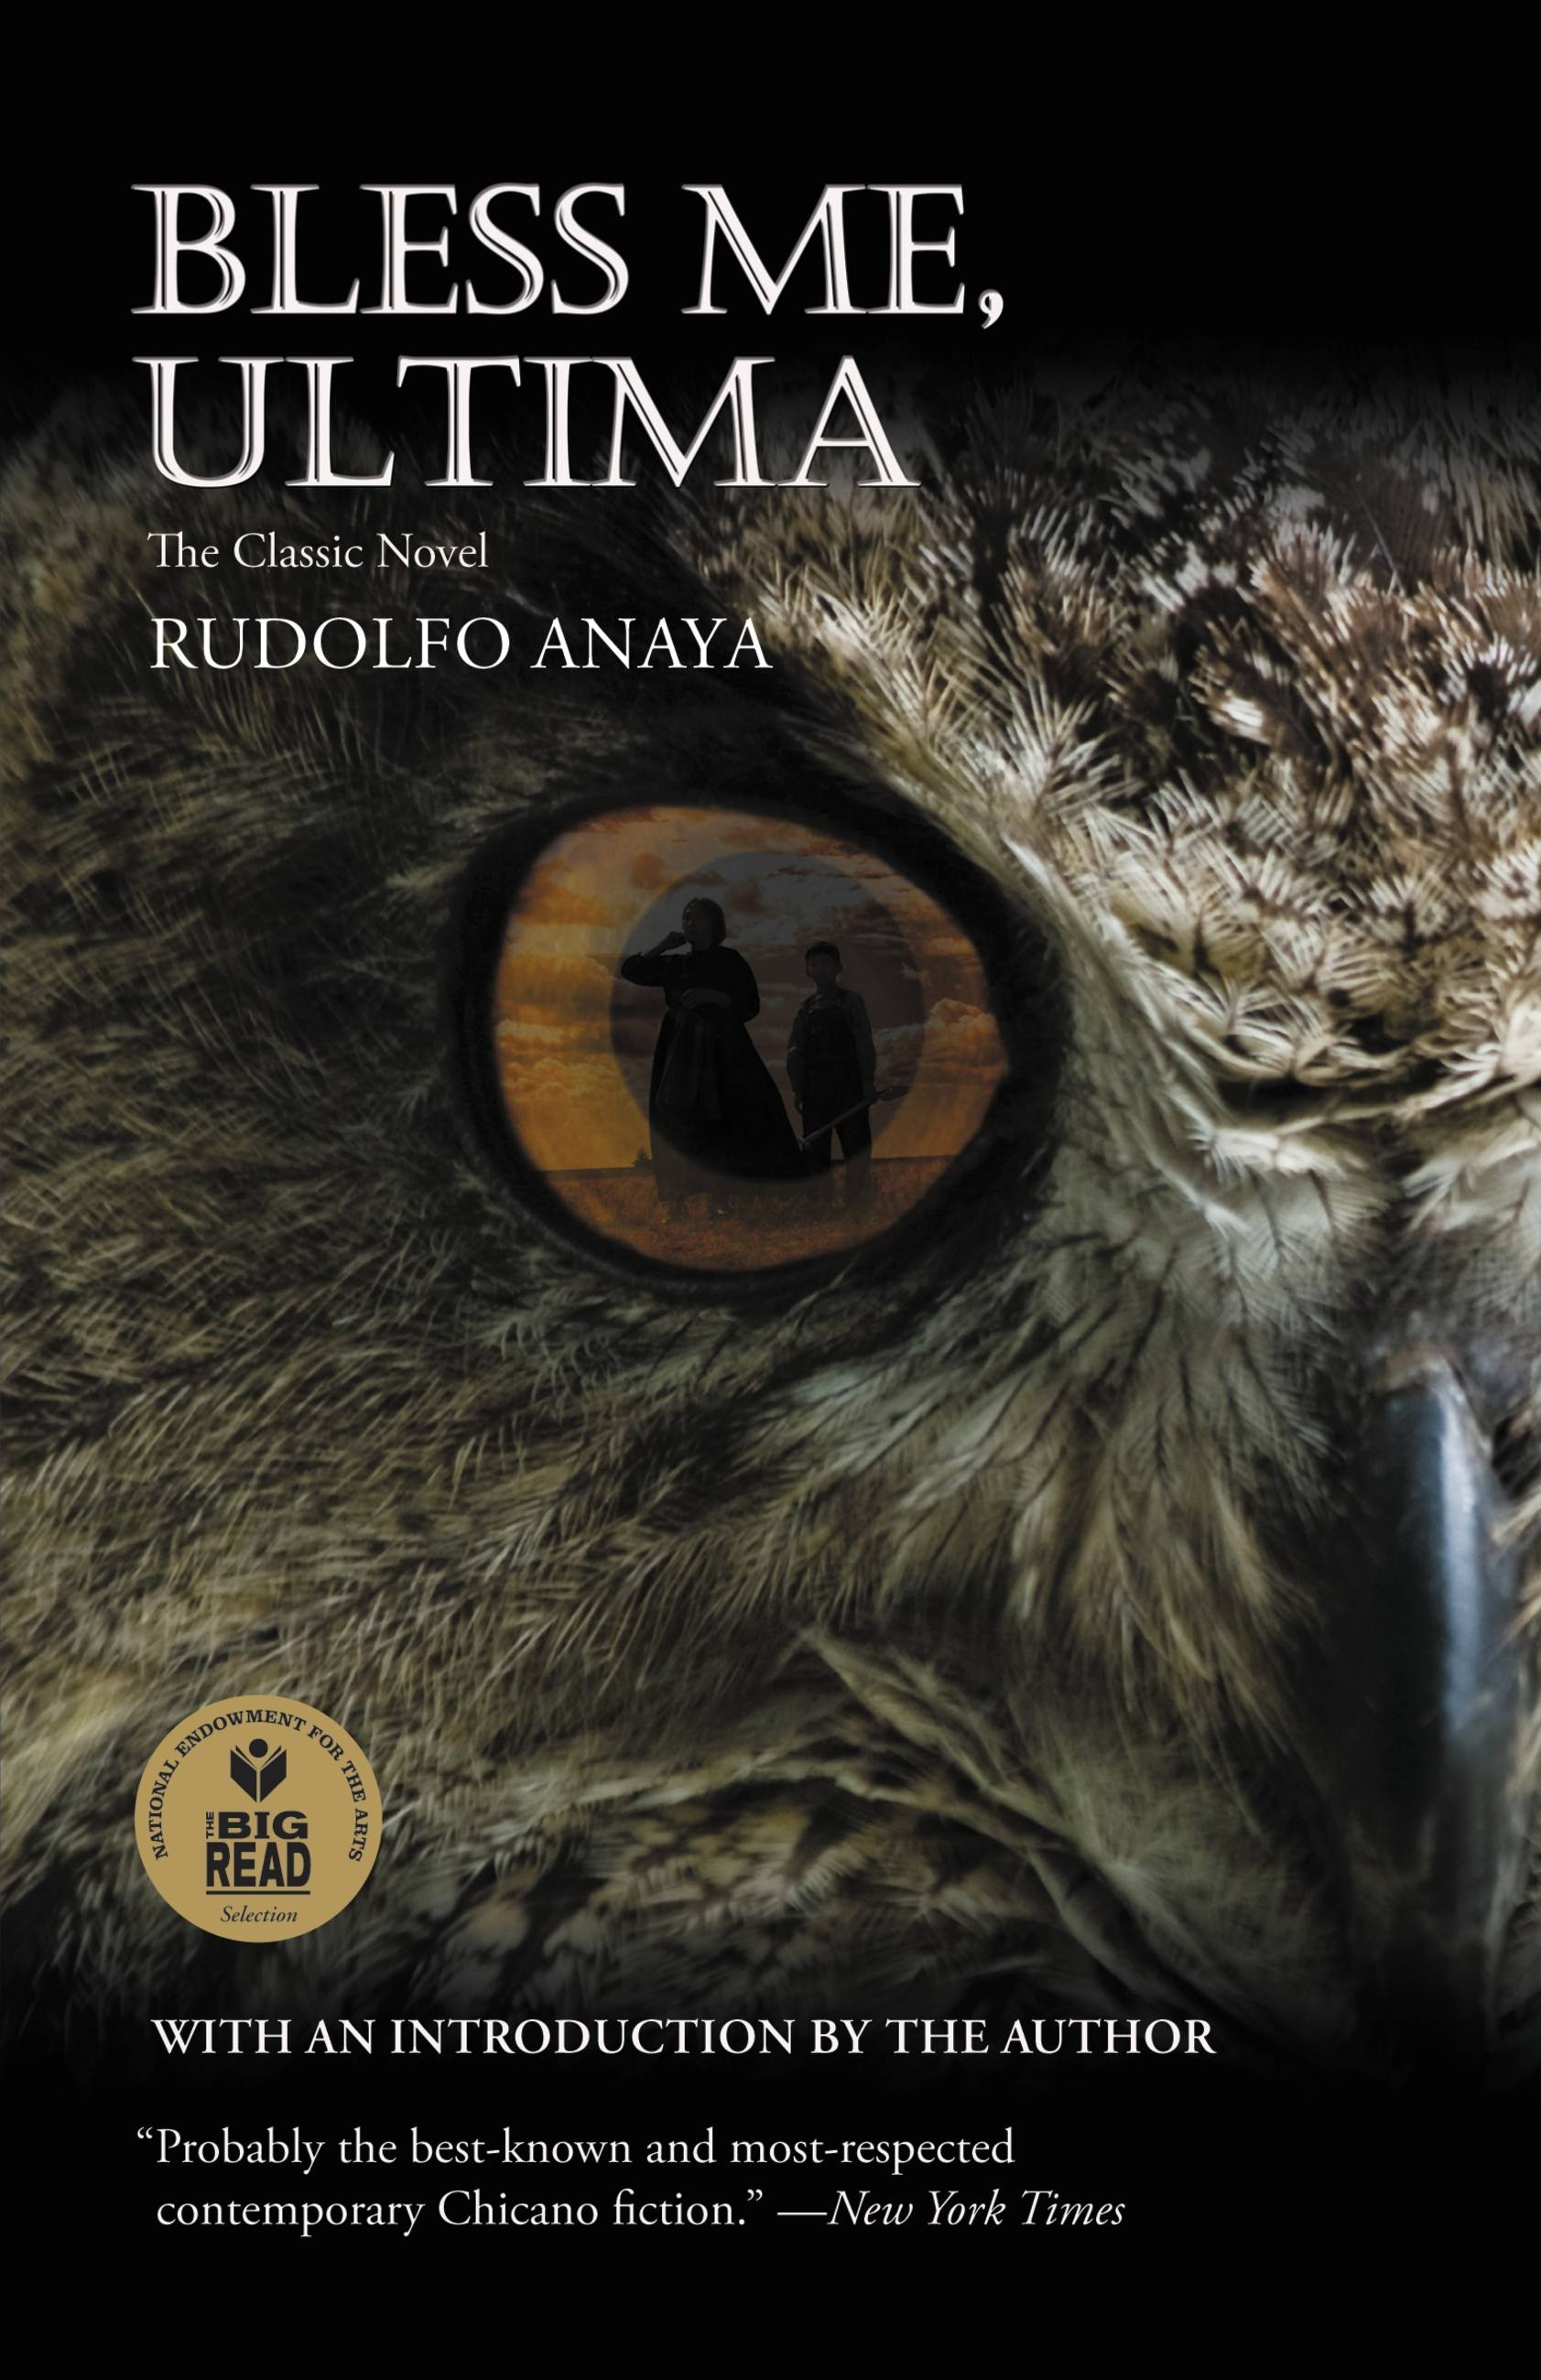 Bless Me, Ultima by Rudolfo Anaya | Hachette Book Group